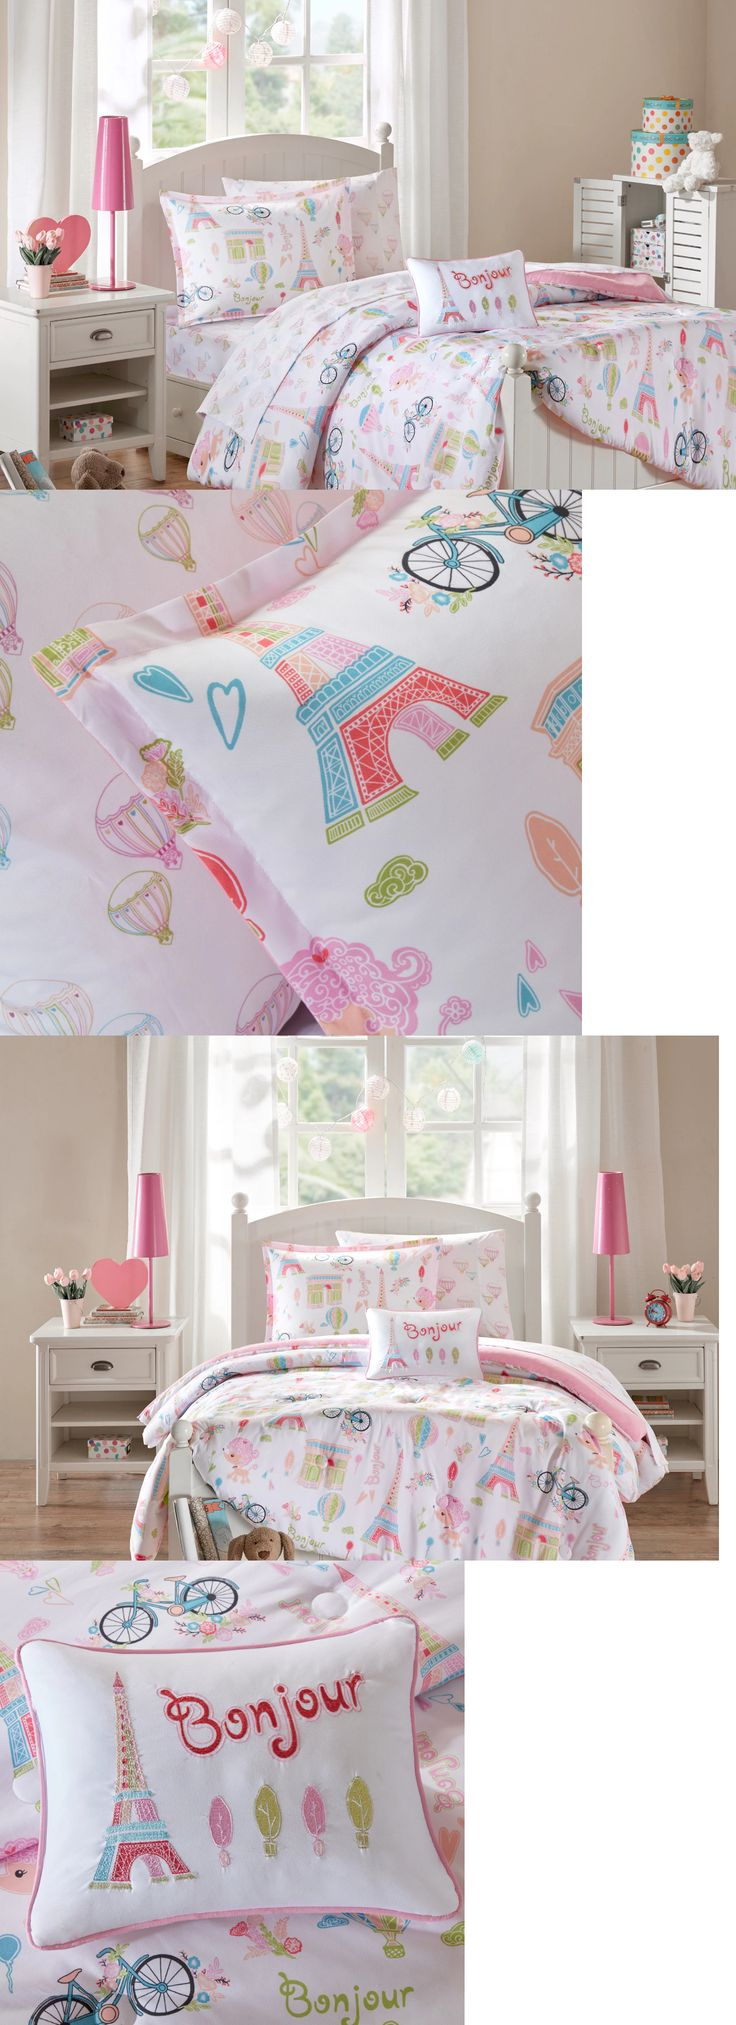 Kids Bedding: Paris Eiffel Tower Poodle Kids Full Bed In A Bag Girls Comforter Set Pink White -> BUY IT NOW ONLY: $84.97 on eBay!